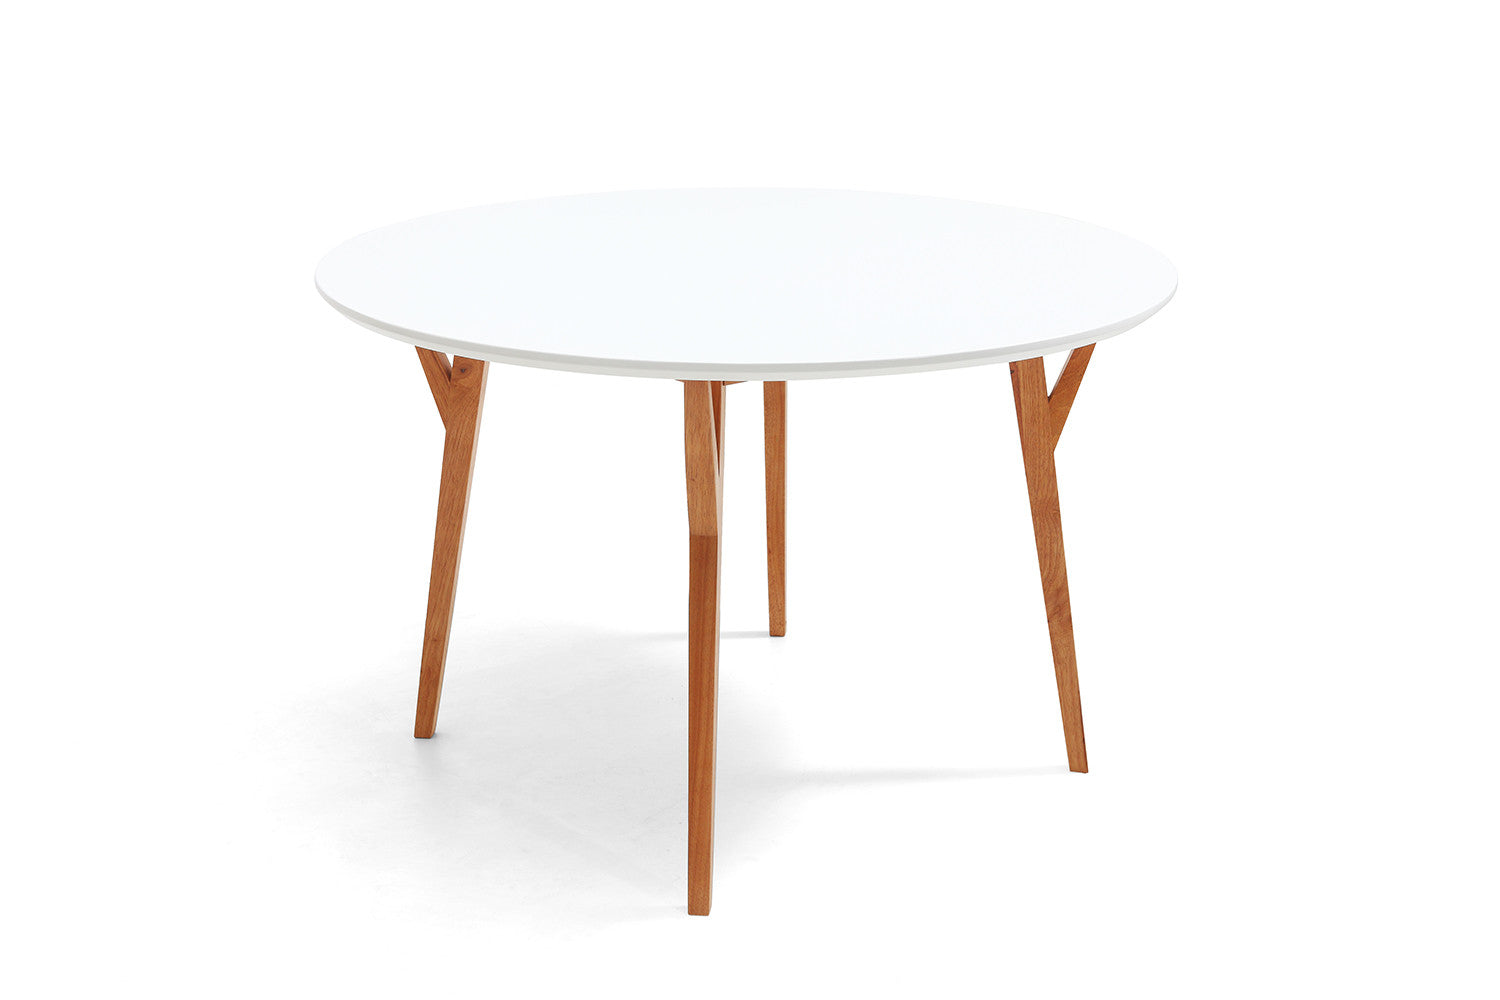 Table de salle manger ronde design scandinave moesa for Table de salle a manger design